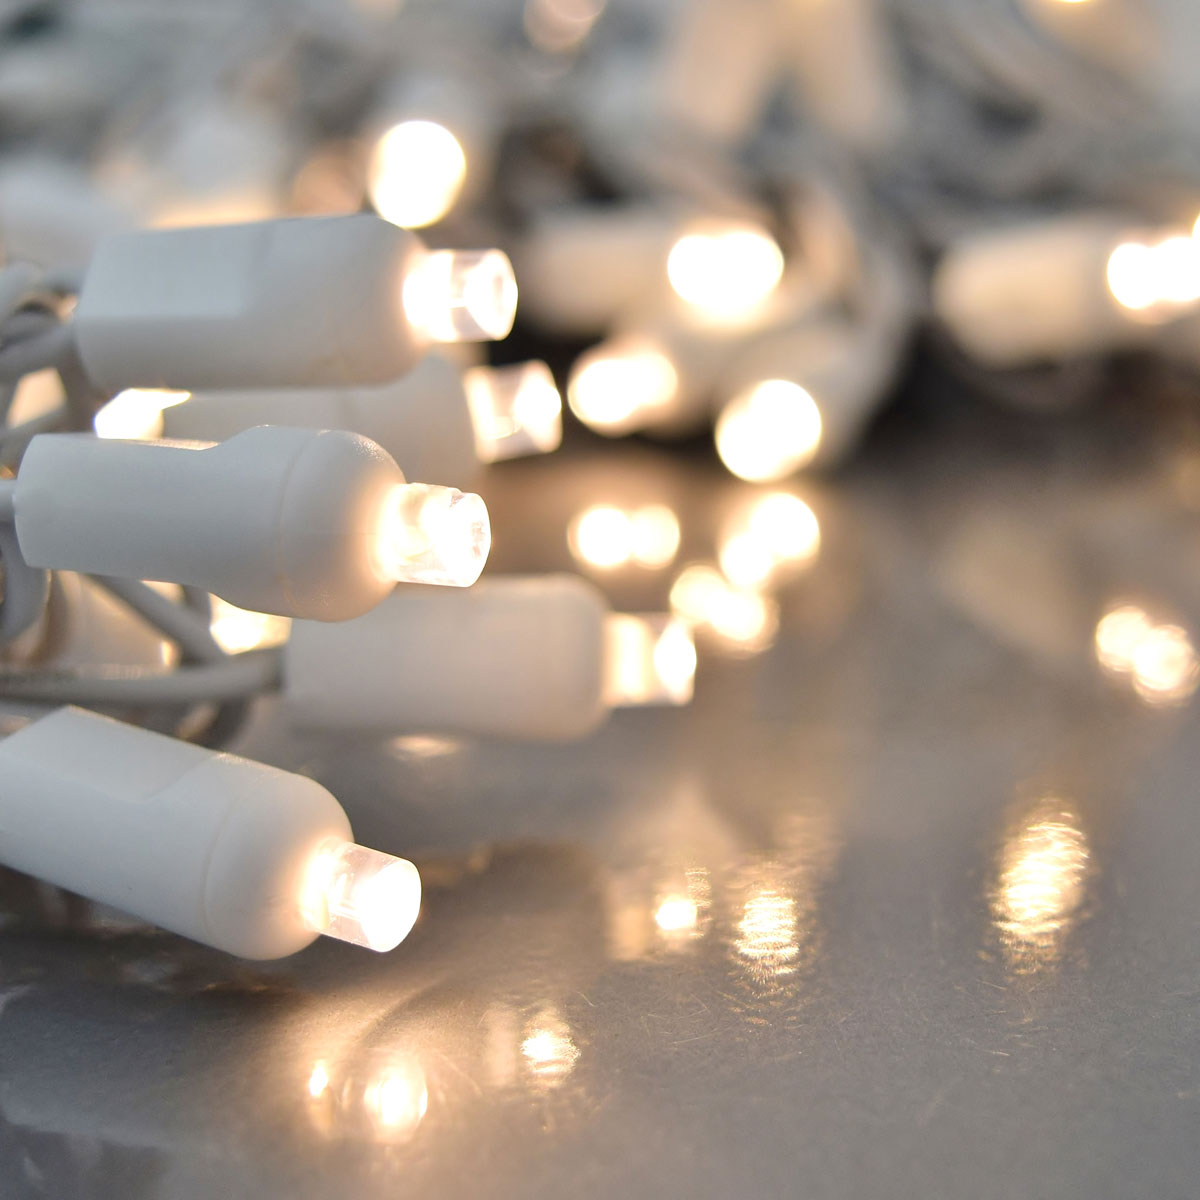 Warm white led string lights 200 lights white wire 5mm led string lights warm white white wire light reel 200 lights mozeypictures Choice Image